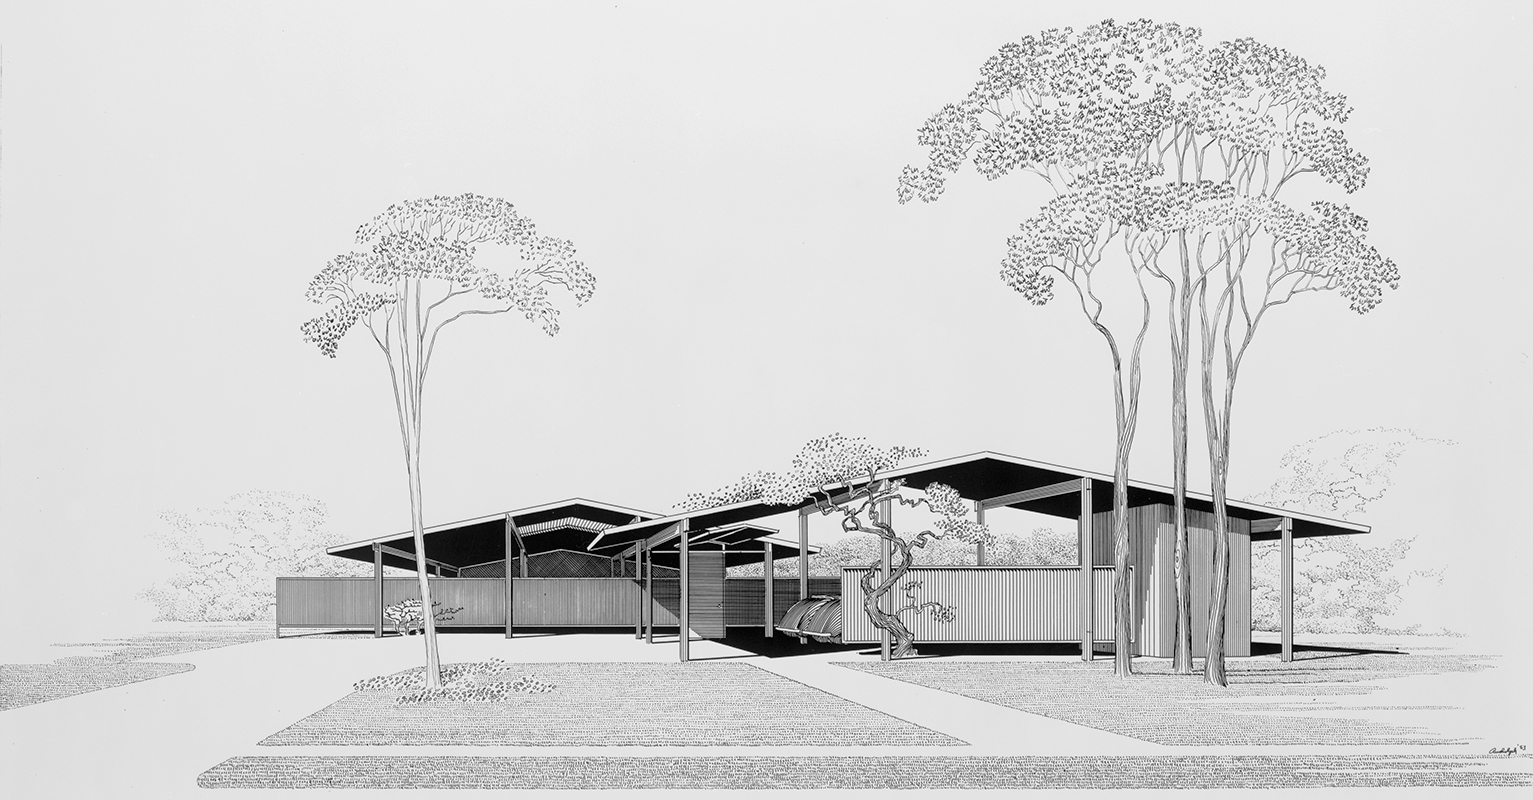 House for Bourne and Company, St. Petersburg, Florida. Exterior Perspective Rendering.